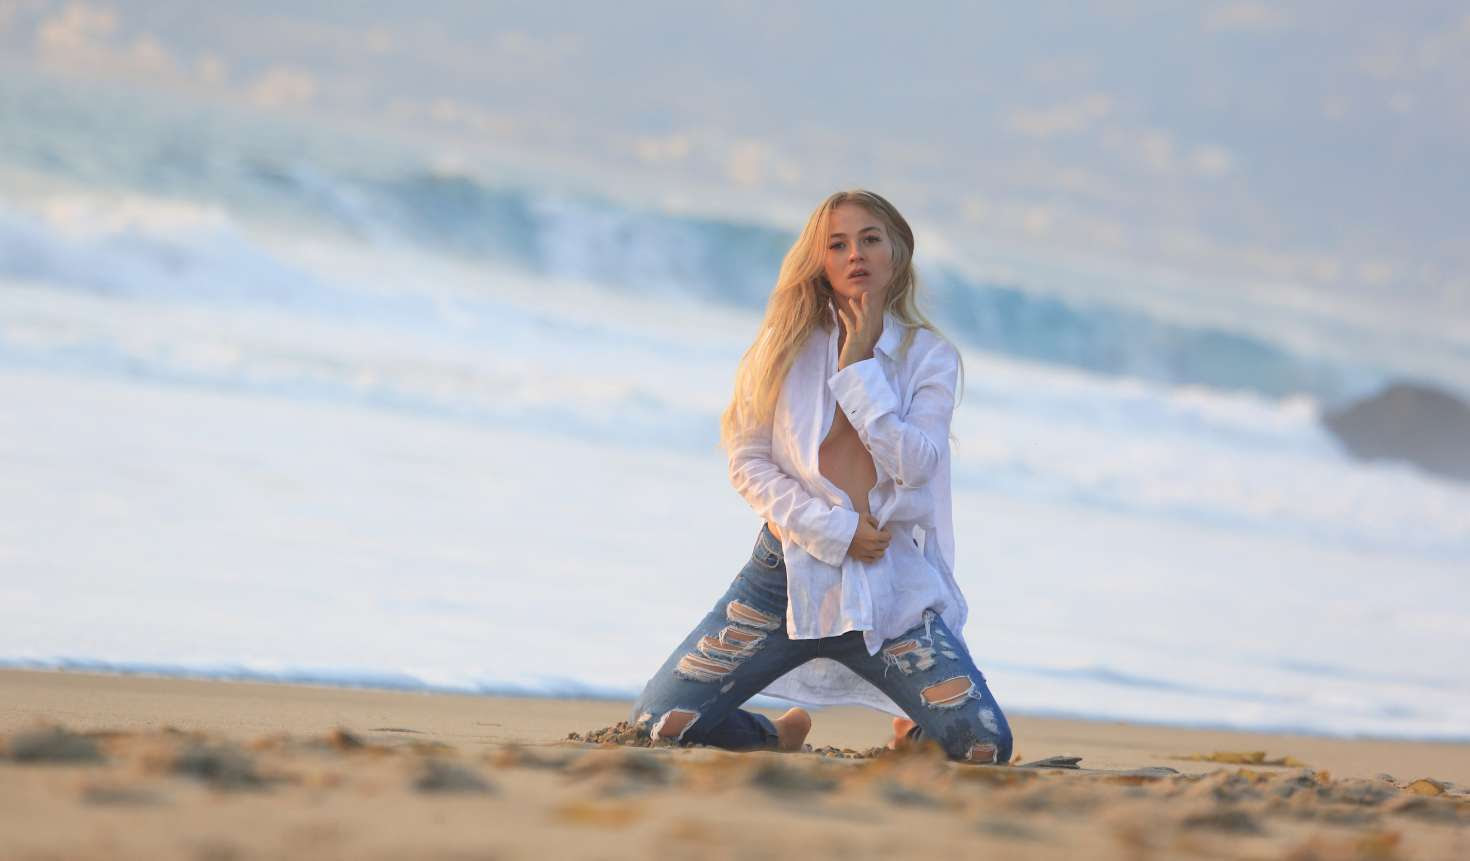 Ellen Alexander – Photoshoot for GQ Russia on the beach in Malibu